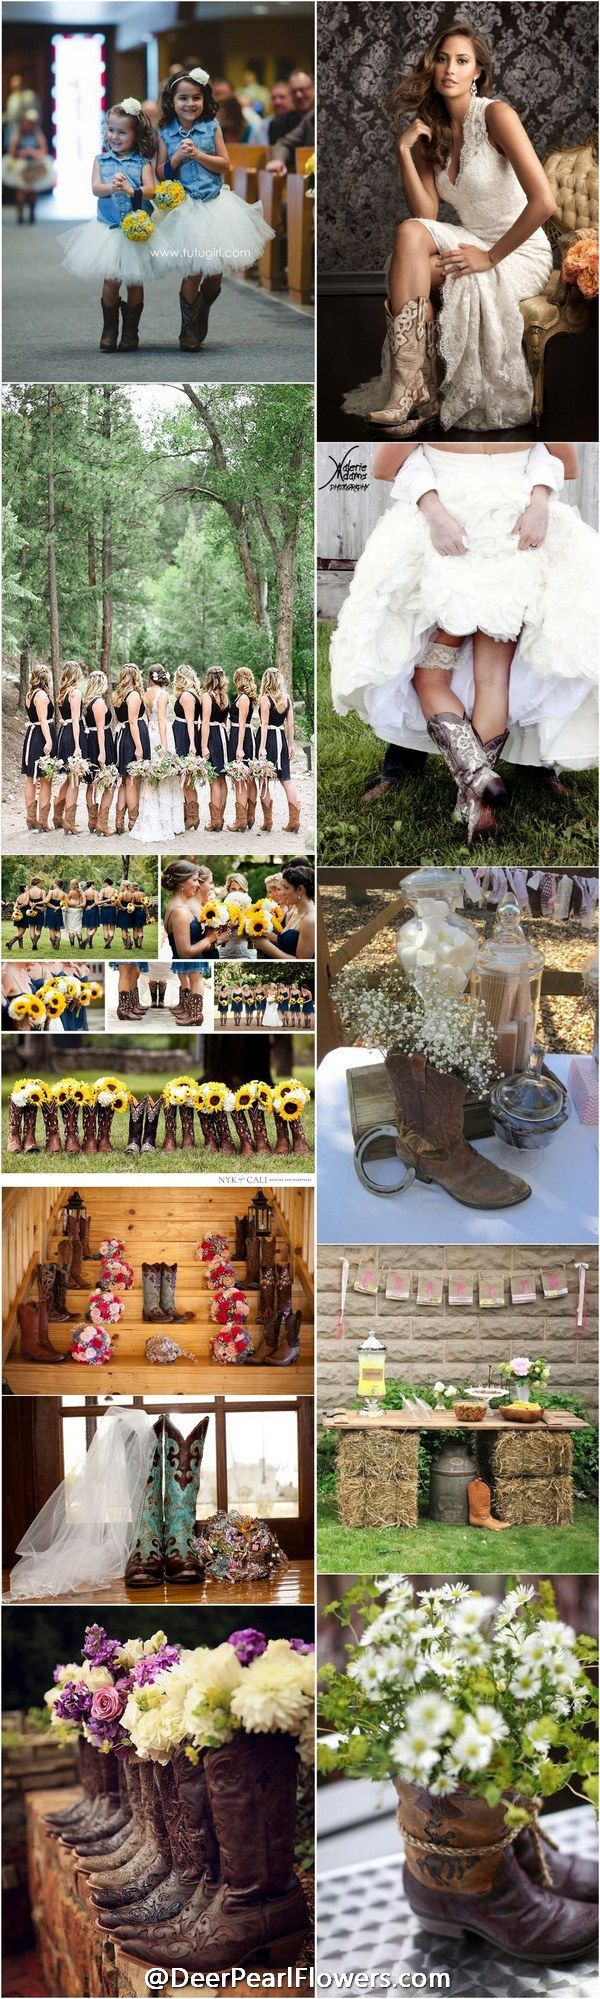 Cowgirl Wedding Ideas Part - 17: rustic country cowboy cowgirl wedding ideas -  http:--www.deerpearlflowers.com